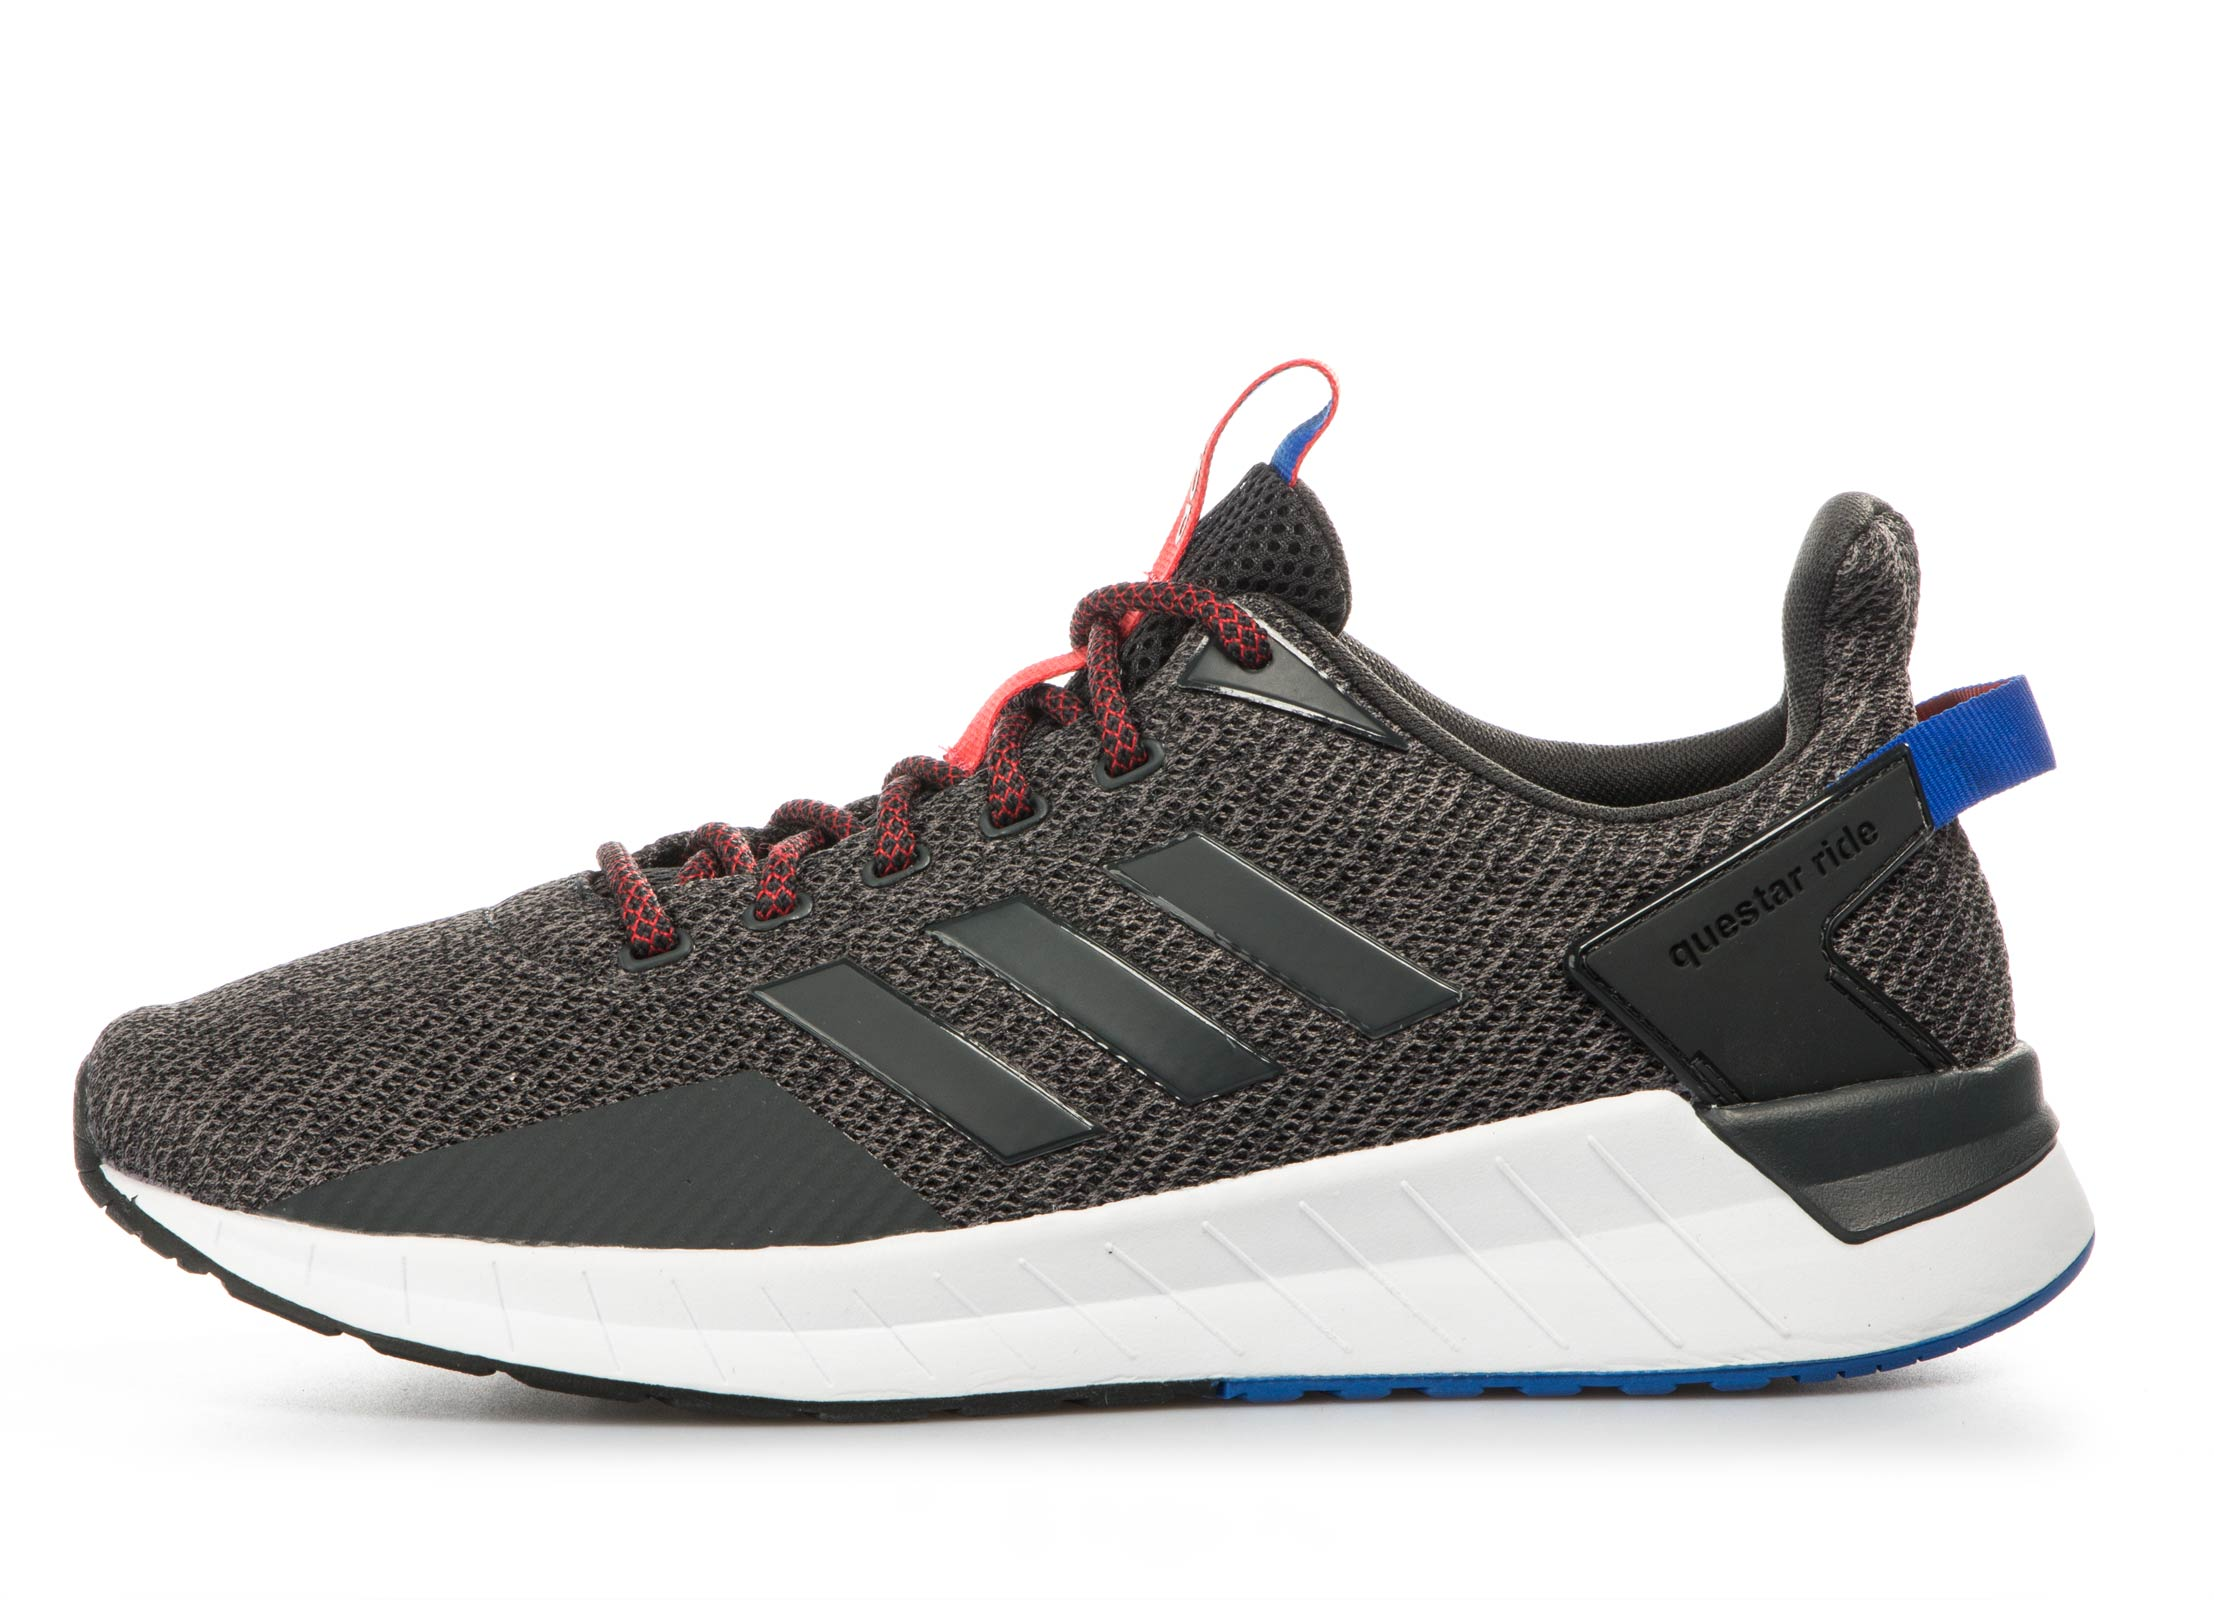 adidas Performance QUESTAR RIDE B44809 Ανθρακί